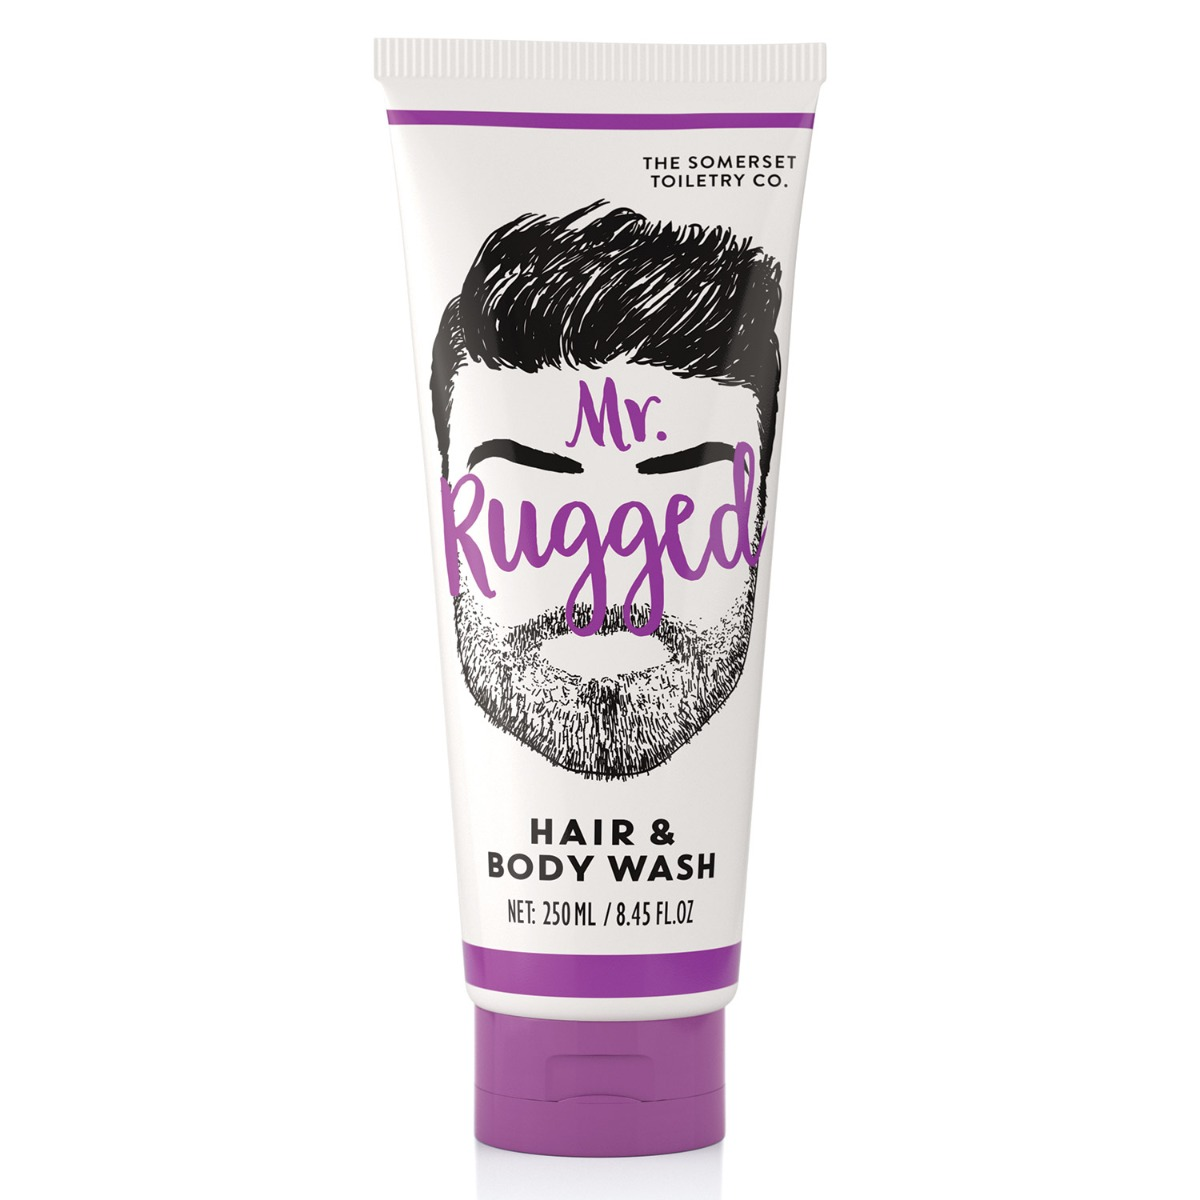 The Somerset Toiletry Co Mr Rugged Hair & Body Wash 250ml